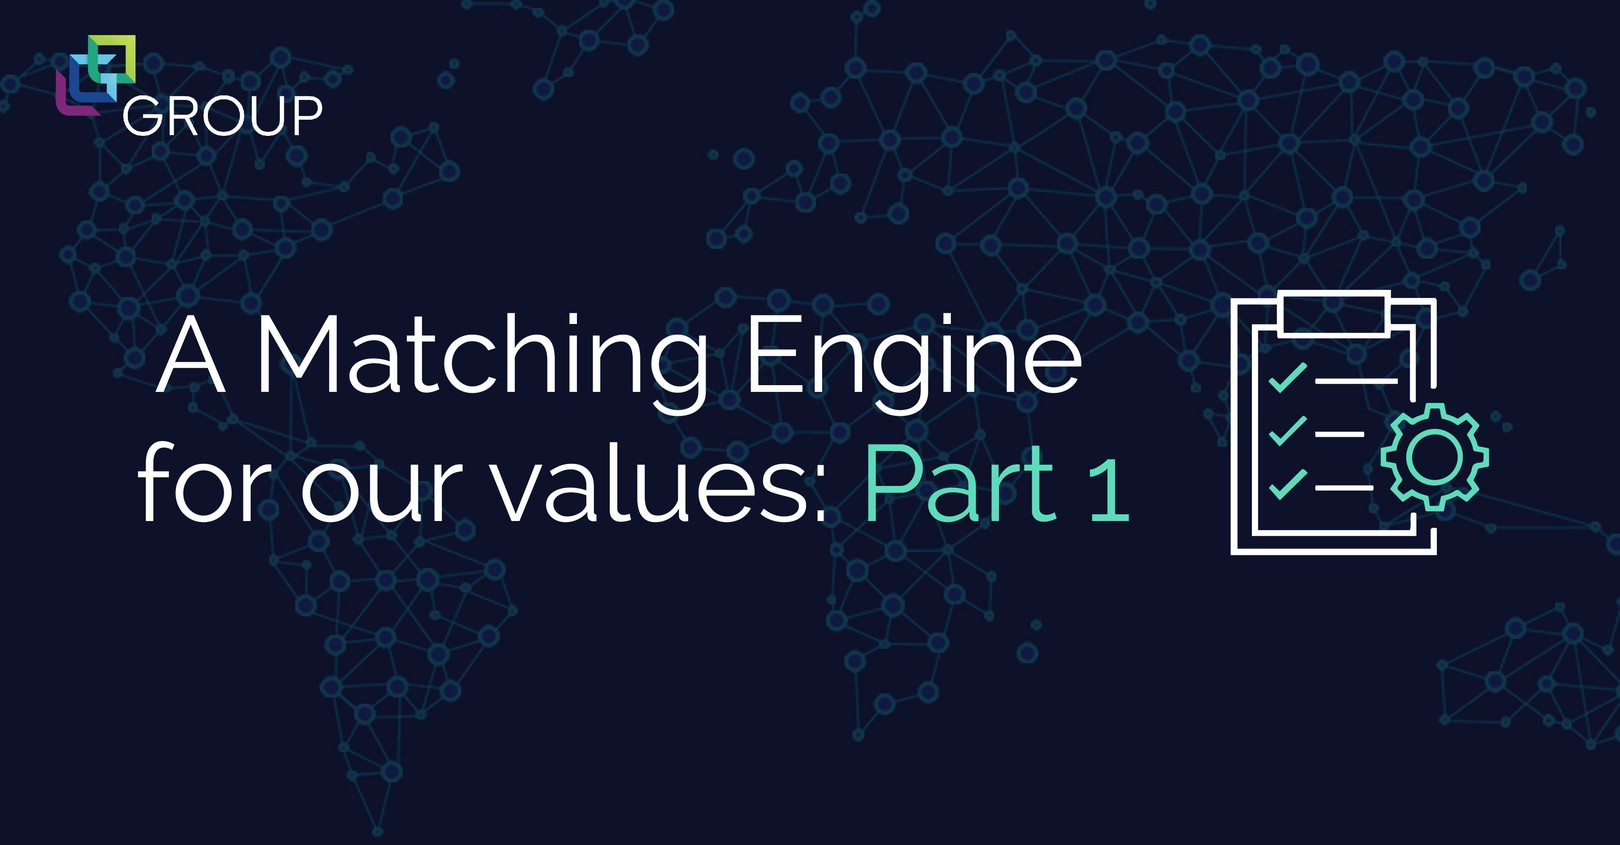 A Matching Engine for our values: Part 1 - LGO Group - Medium